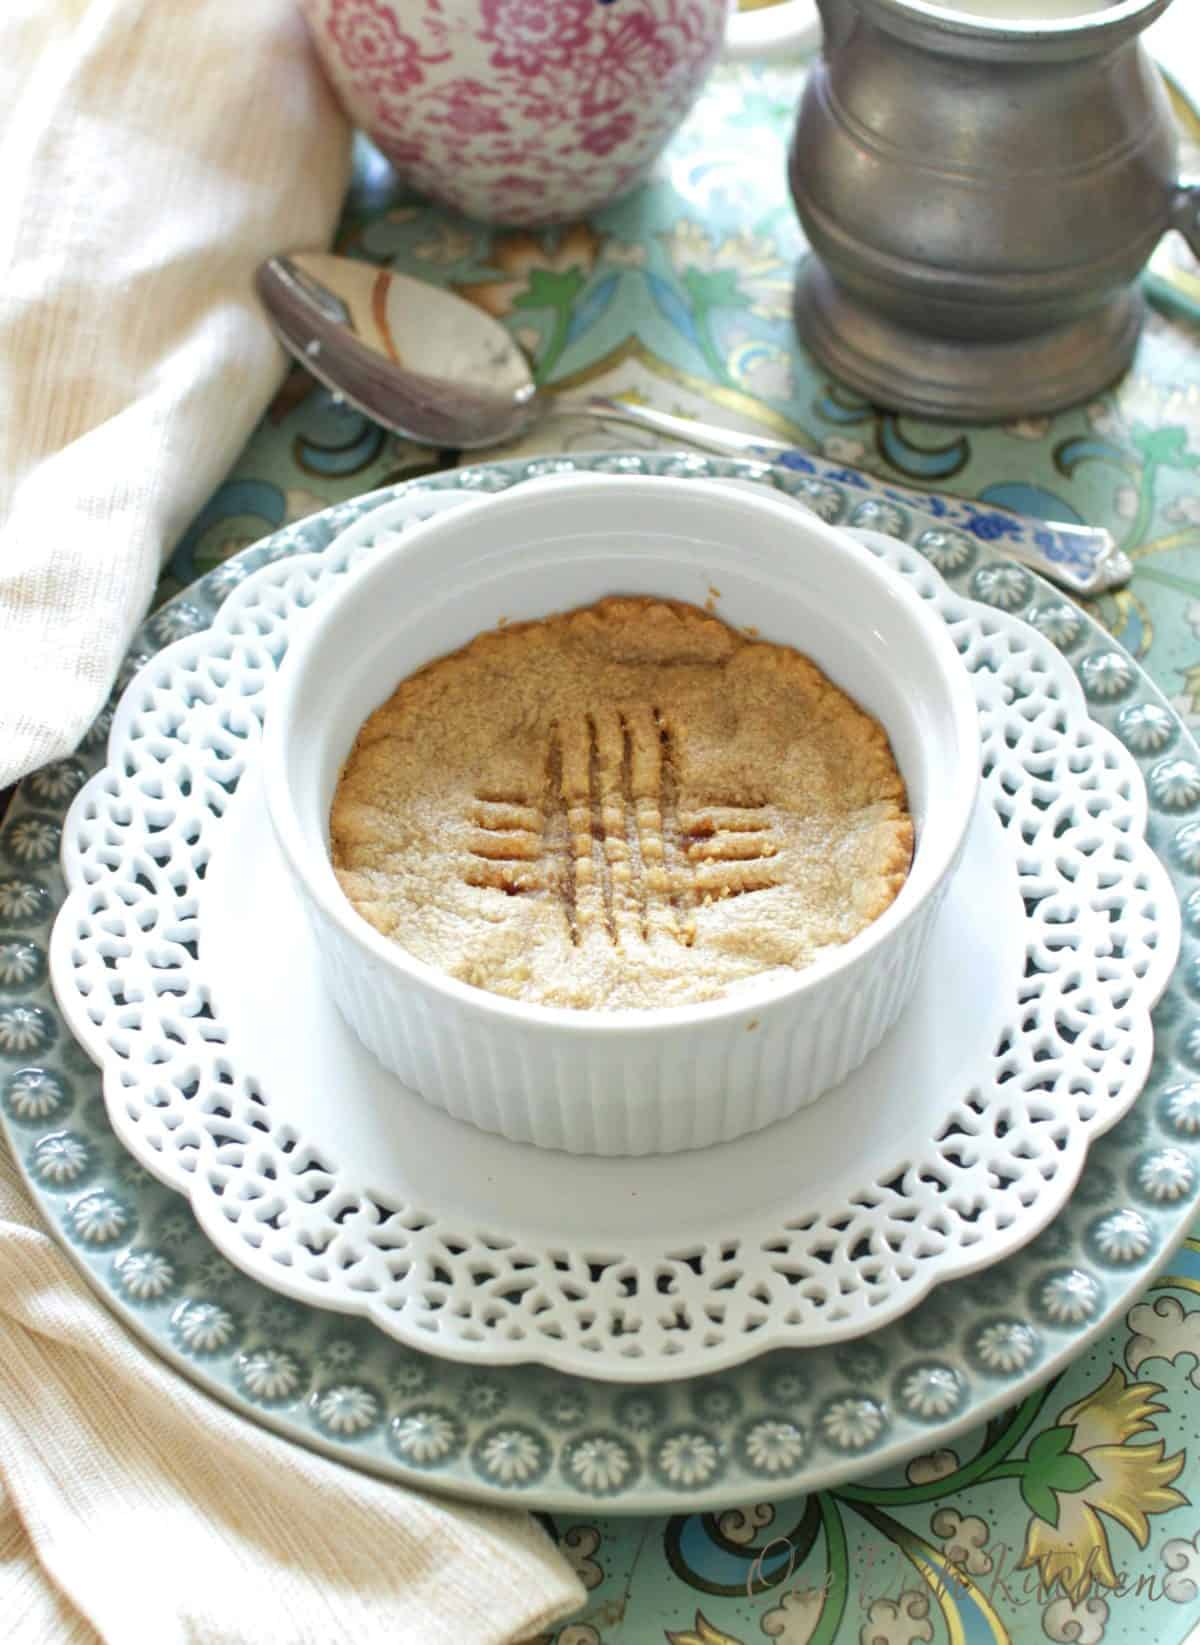 a cookie baked in a small white ramekin on a green plate,